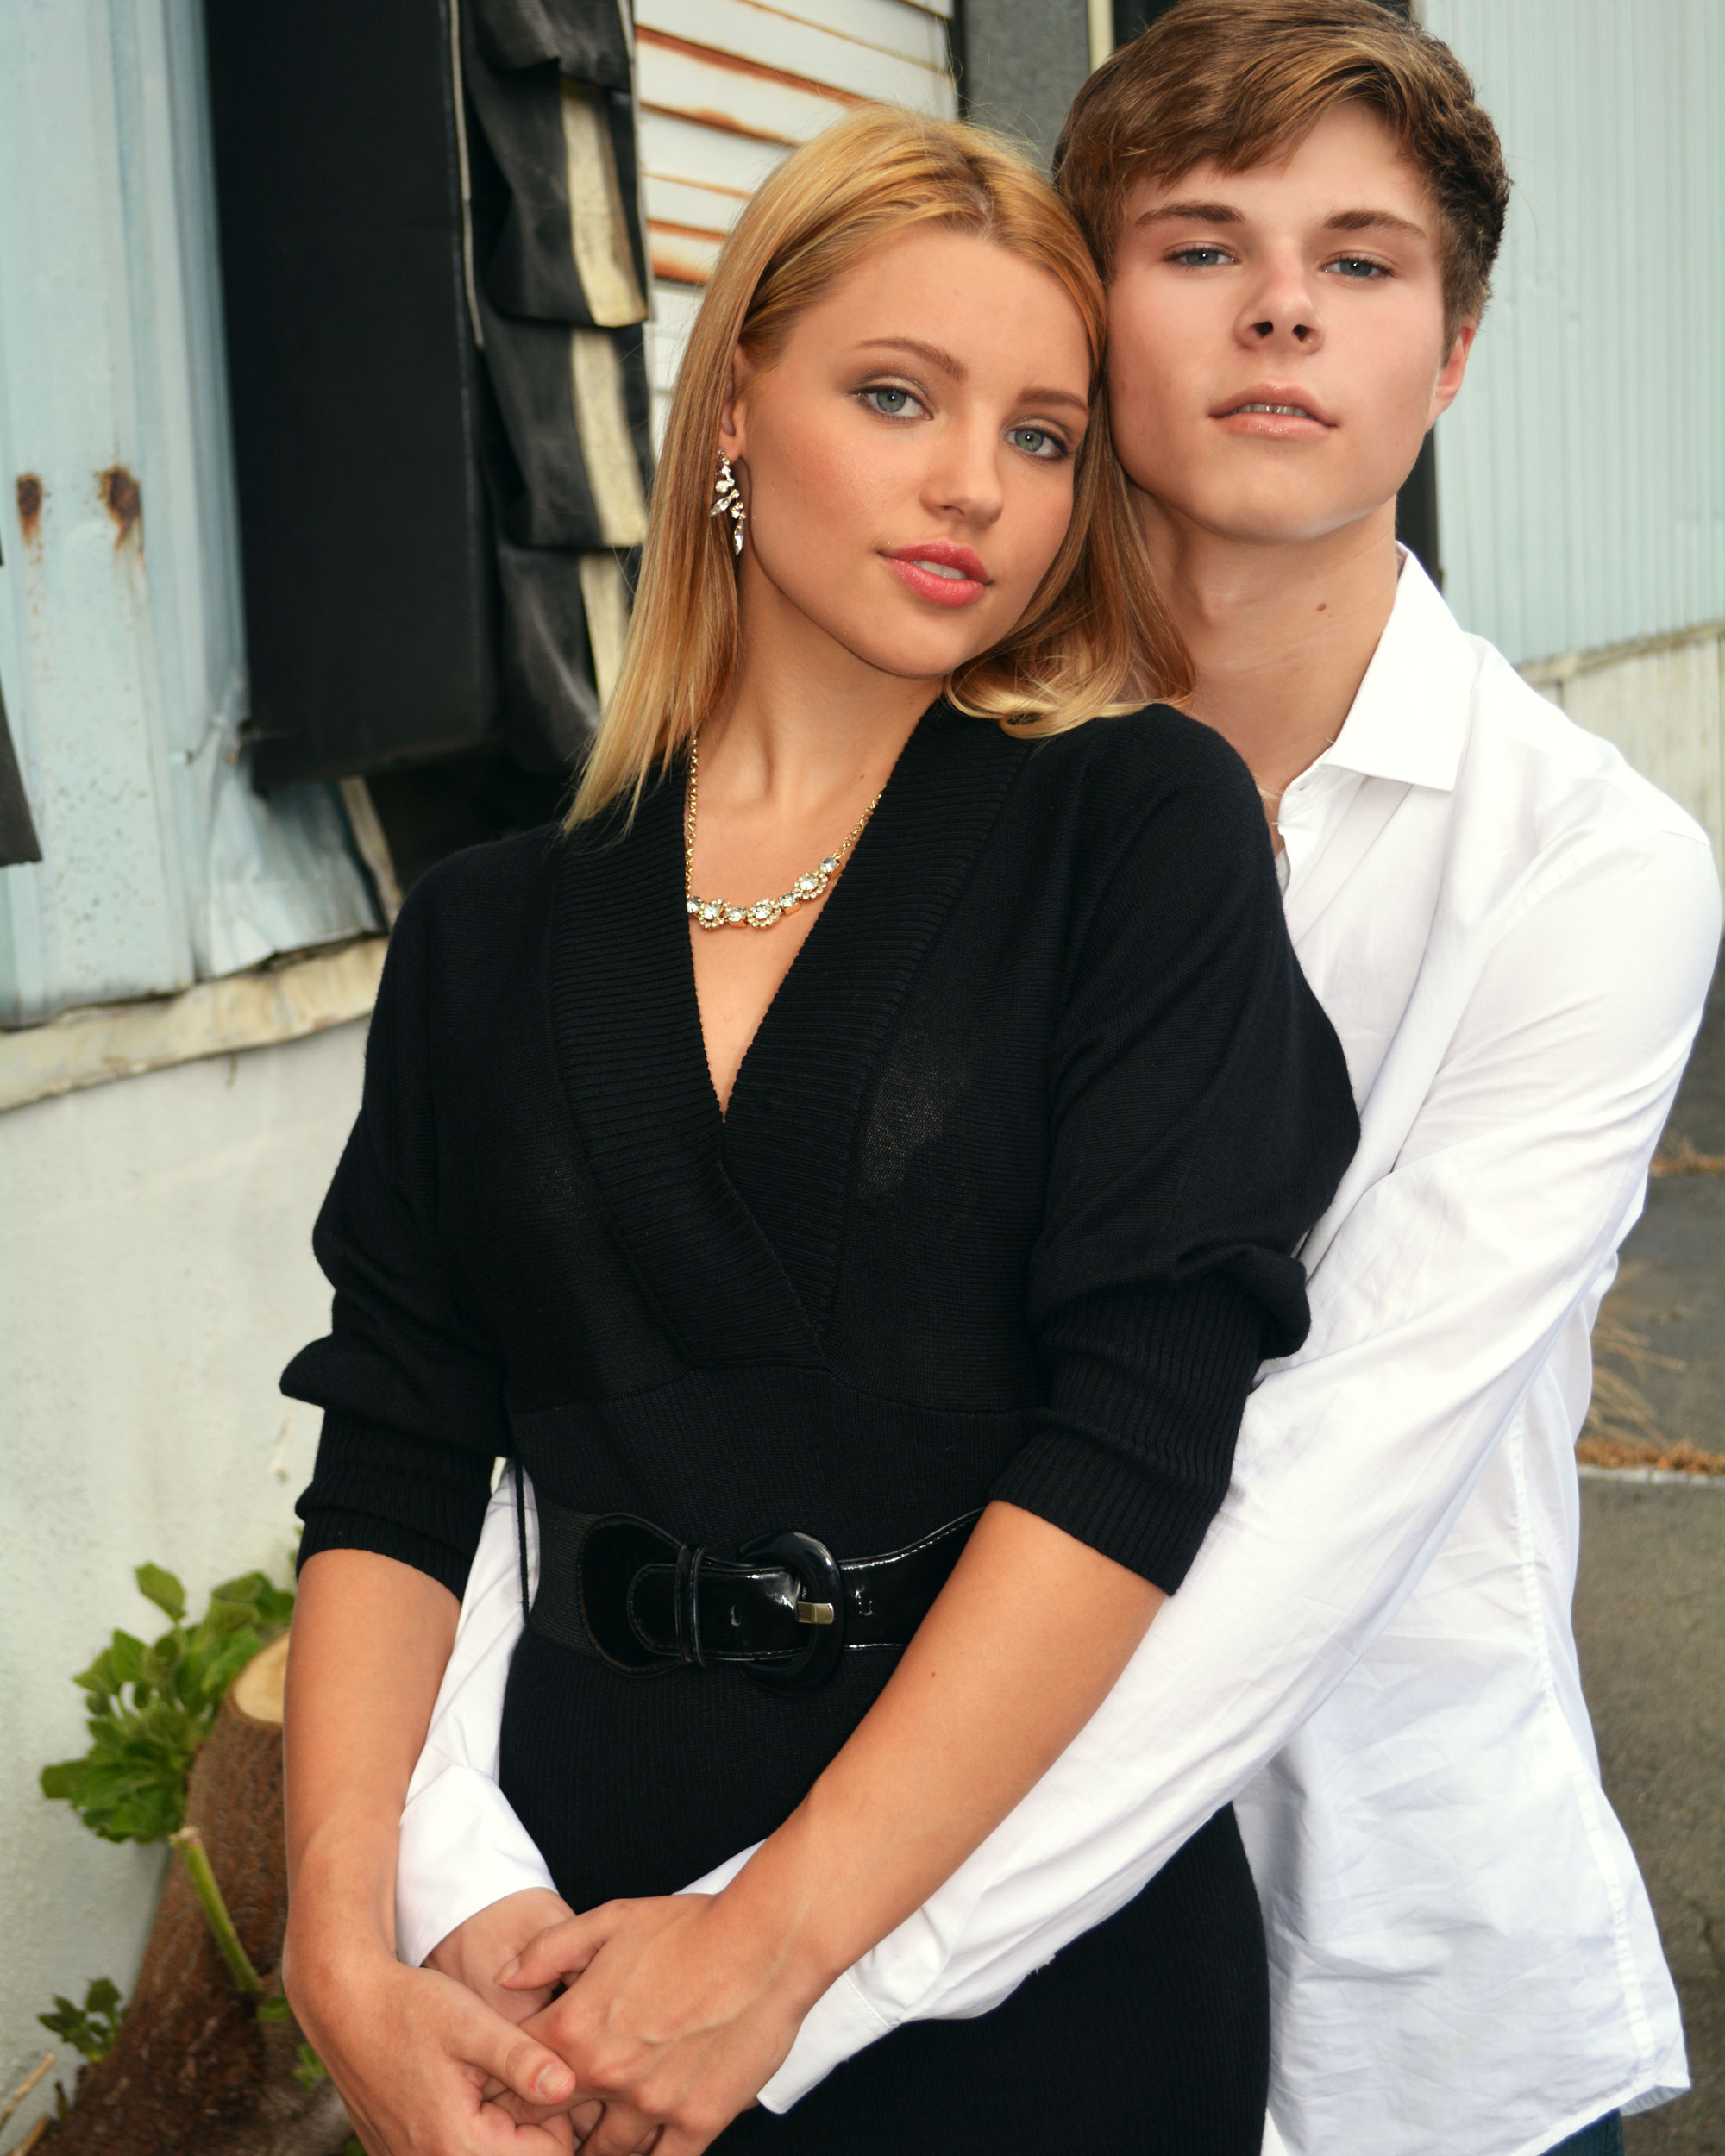 Ryan-and-Willow-Embrace-1-WEB.jpg